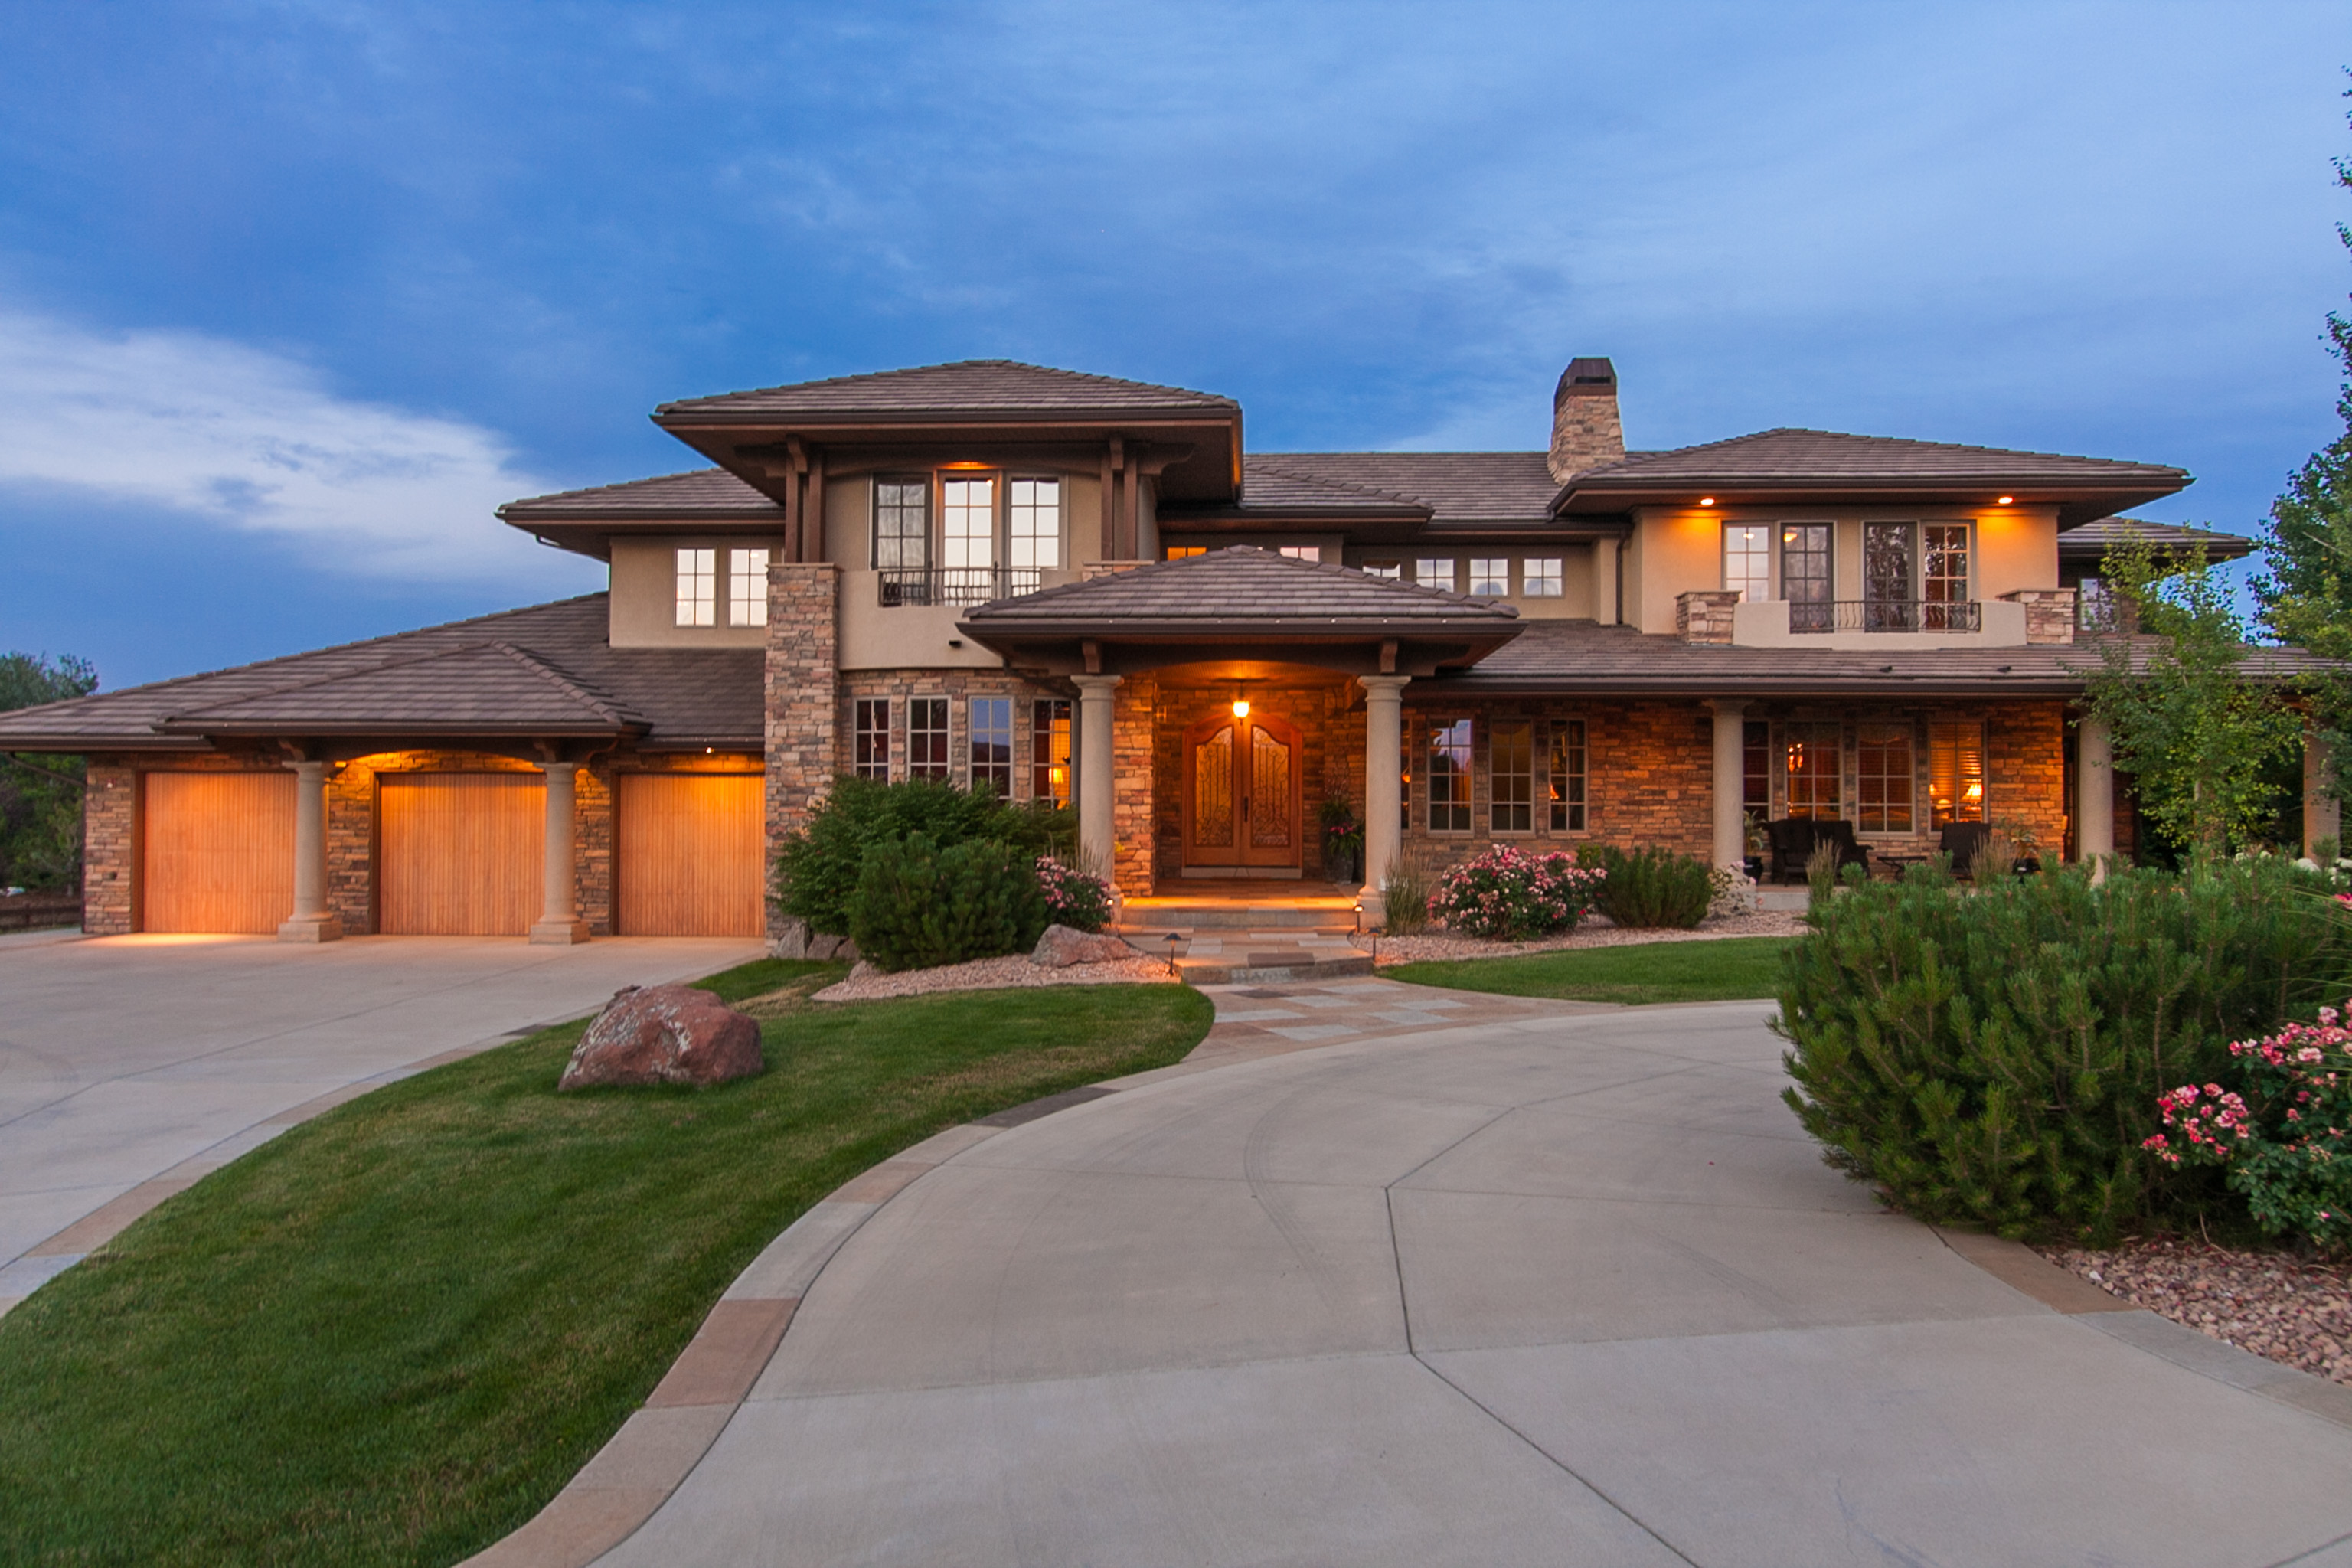 Single Family Home for Sale at Stunning Views of the Indian Peak Mountain Range 9044 Jason Ct Boulder, Colorado, 80303 United States